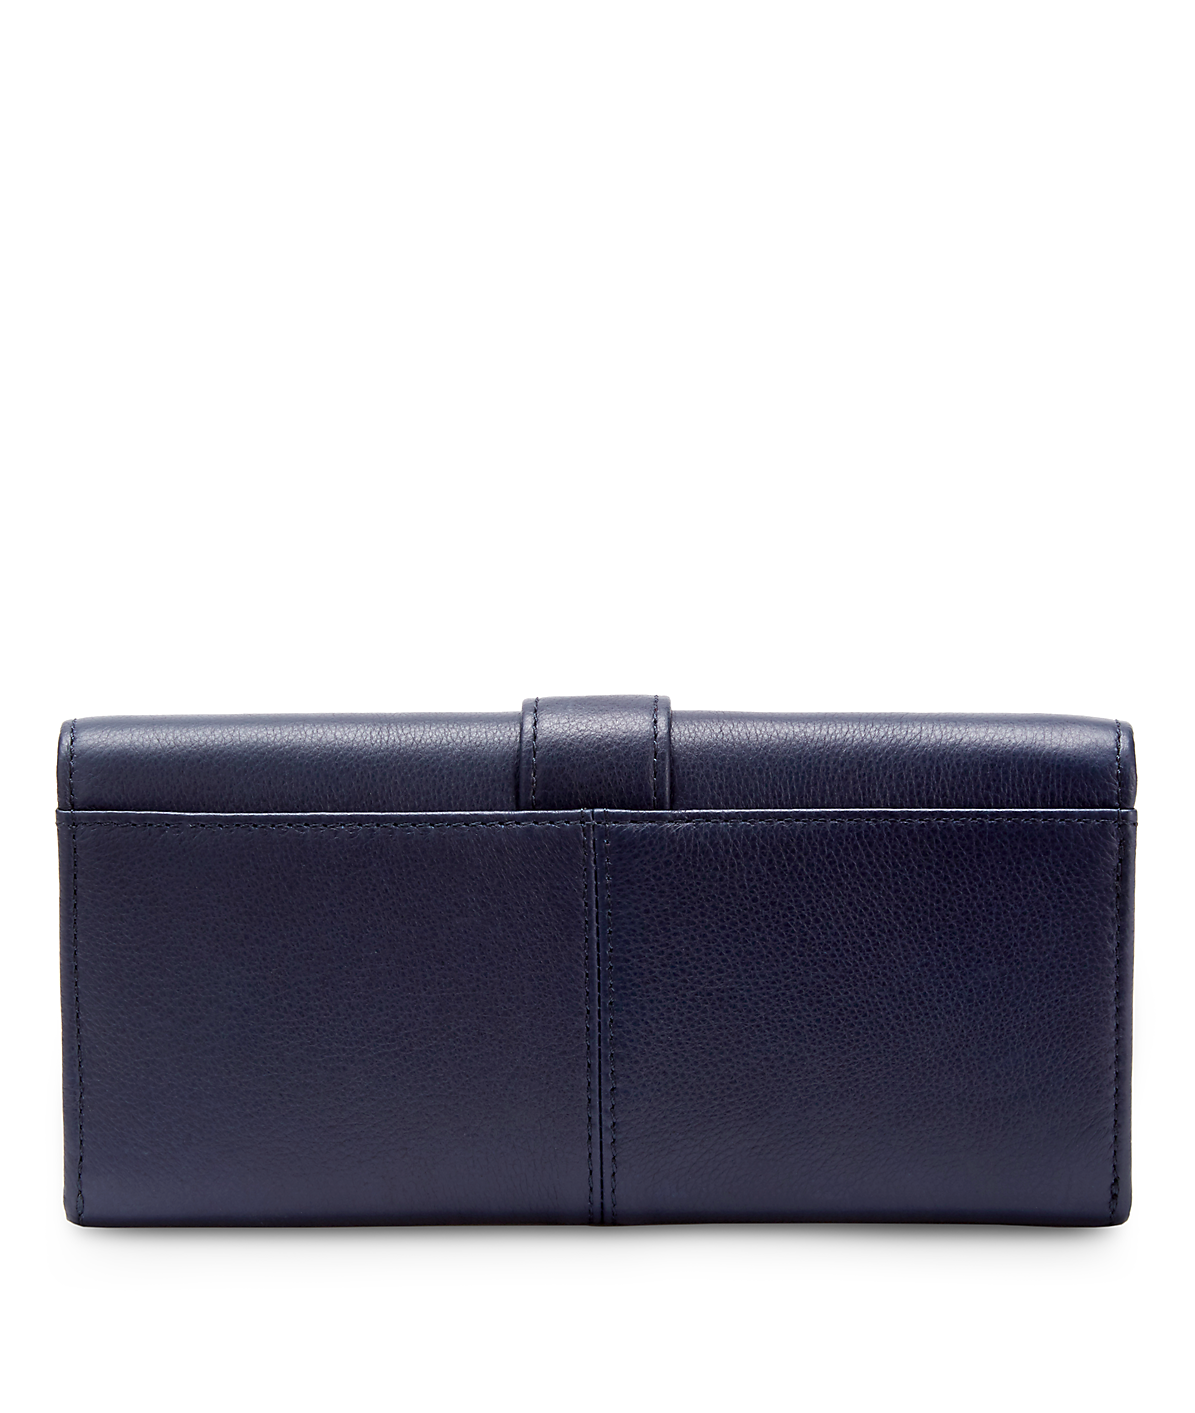 LeonieRe purse from liebeskind